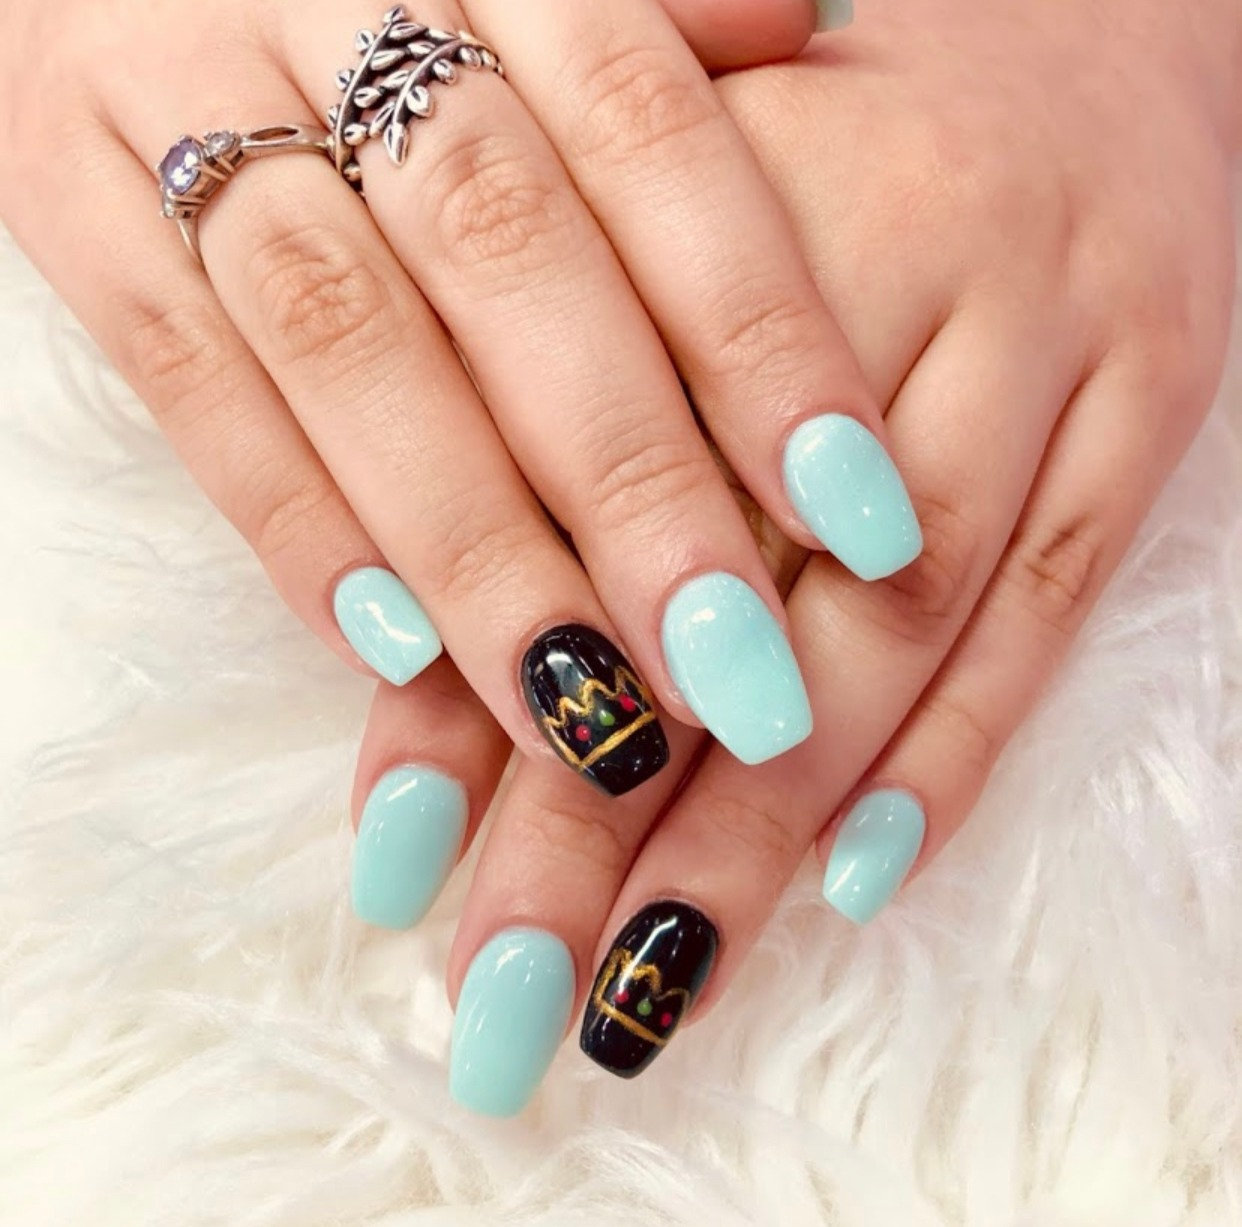 SNS Dipping with Manicure